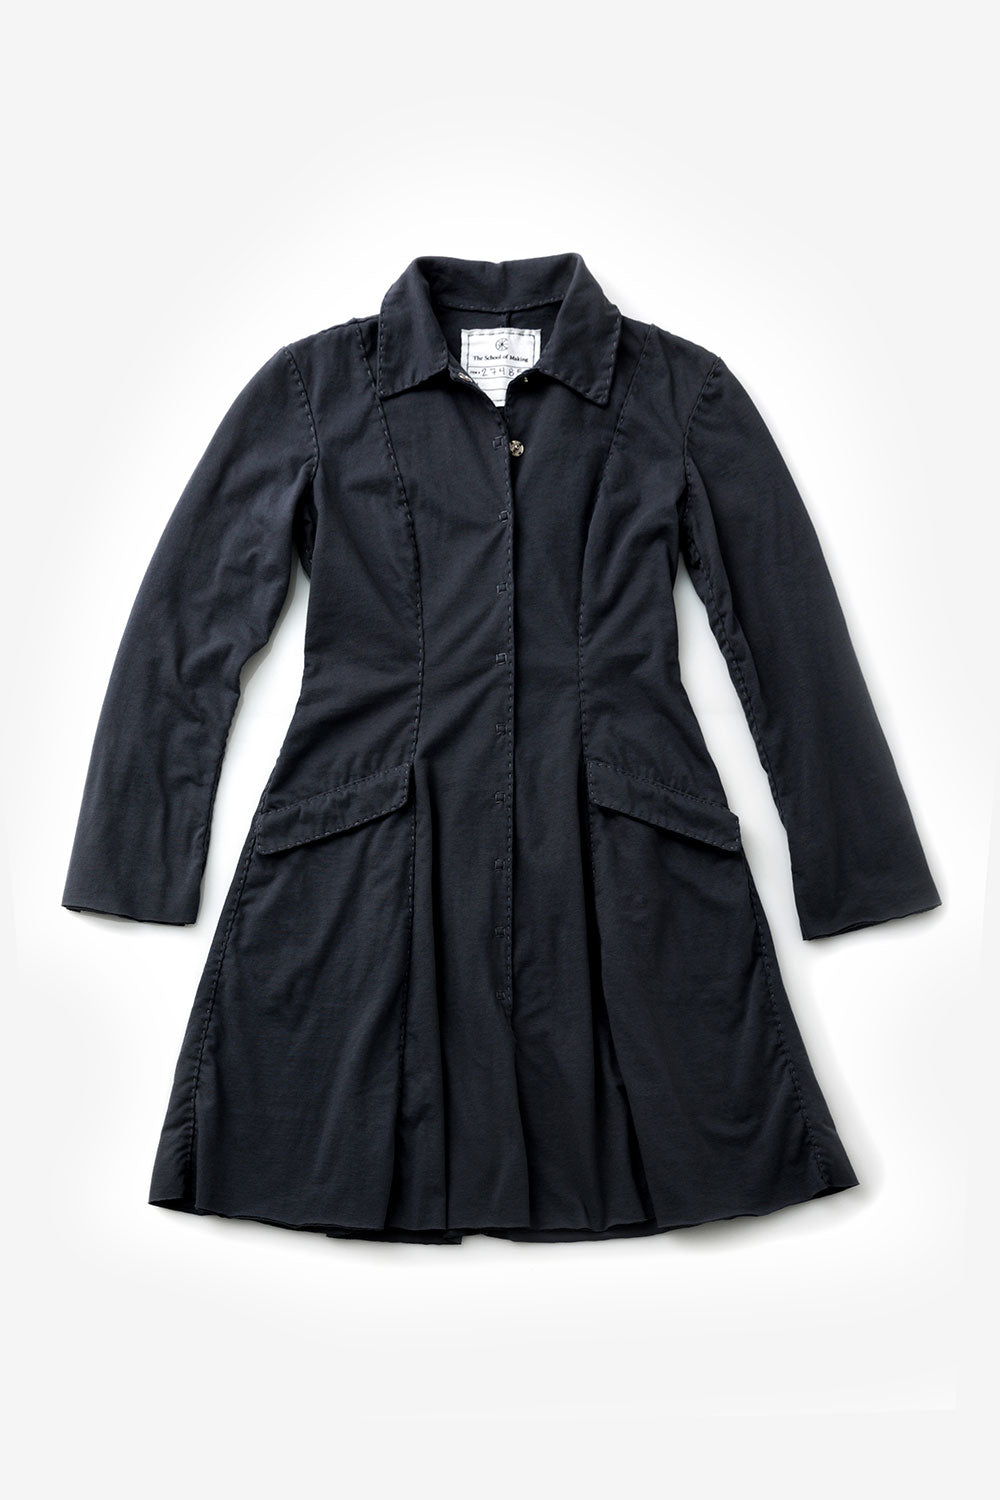 The School of Making The Ezra Coat Pattern Women's DIY Clothing Pattern for Hand-Sewn Short and Long Jacket